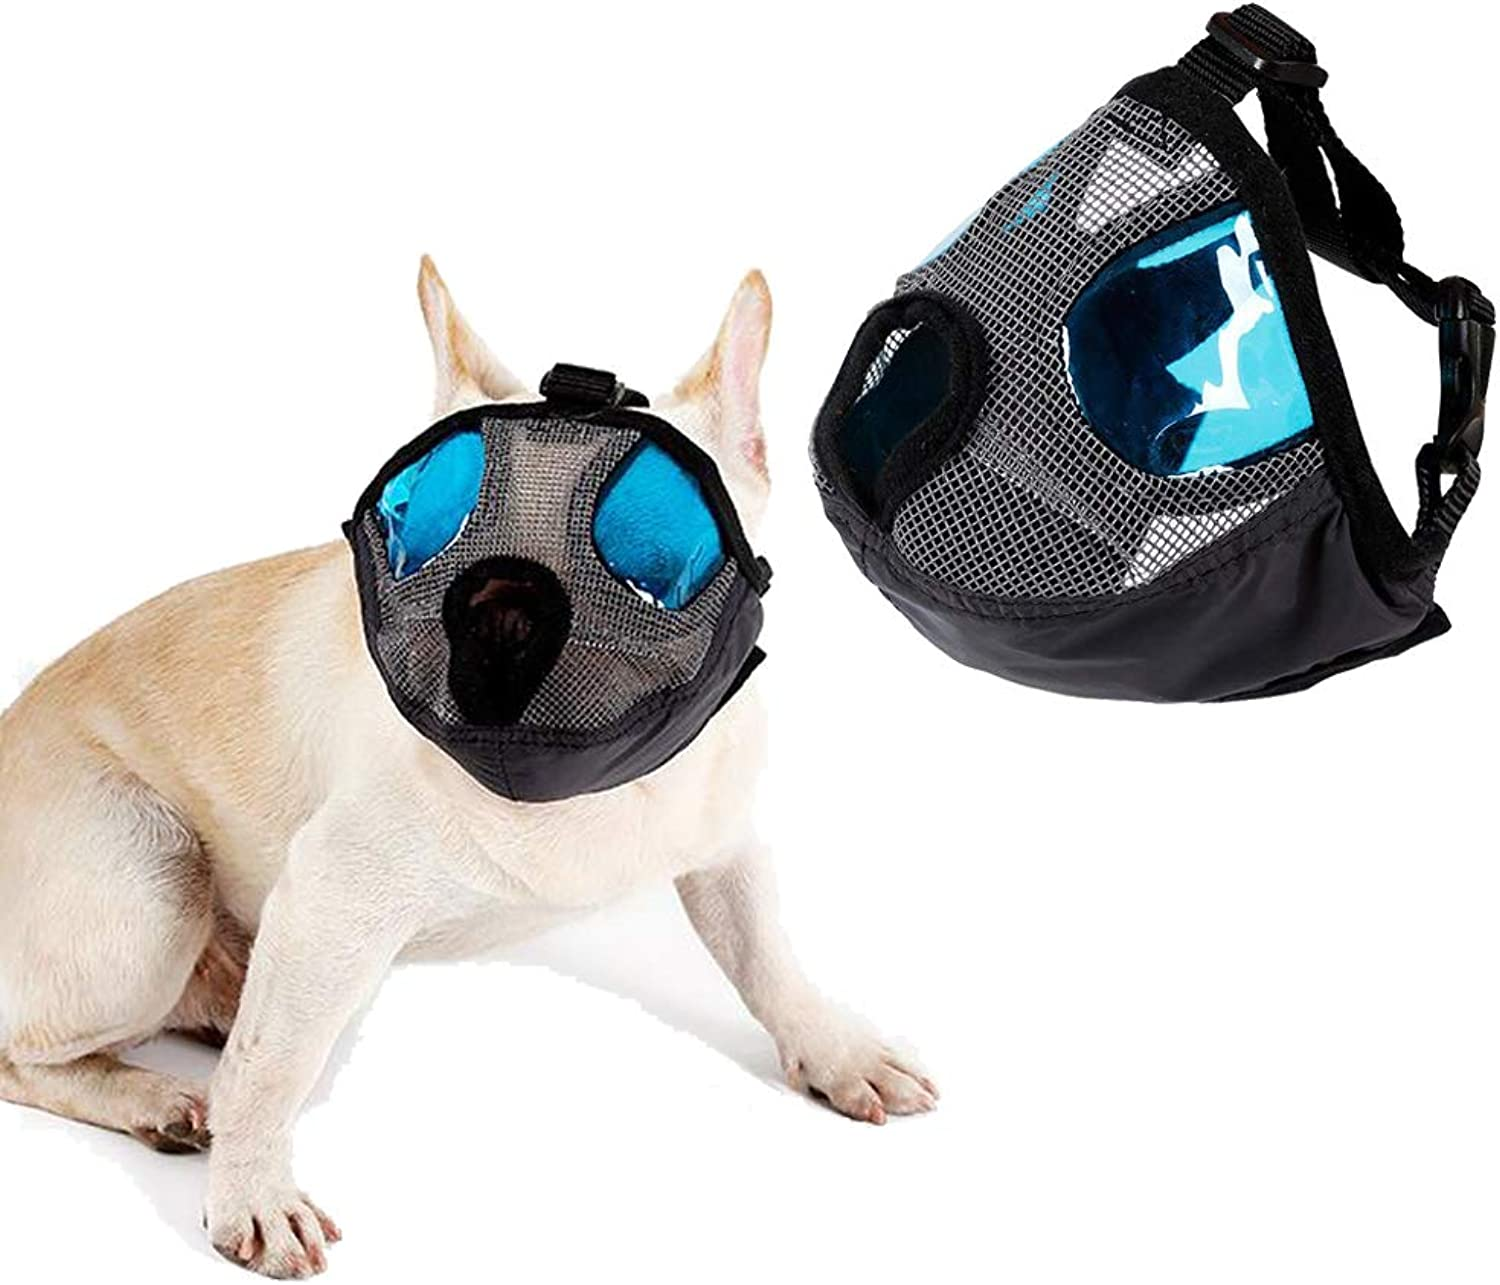 Petneces Dog Muzzle for Barking Puppy Mask Anti Barking and Biting with bluee Cool Eyes Cover Muzzle for Small Medium Large Size Dog